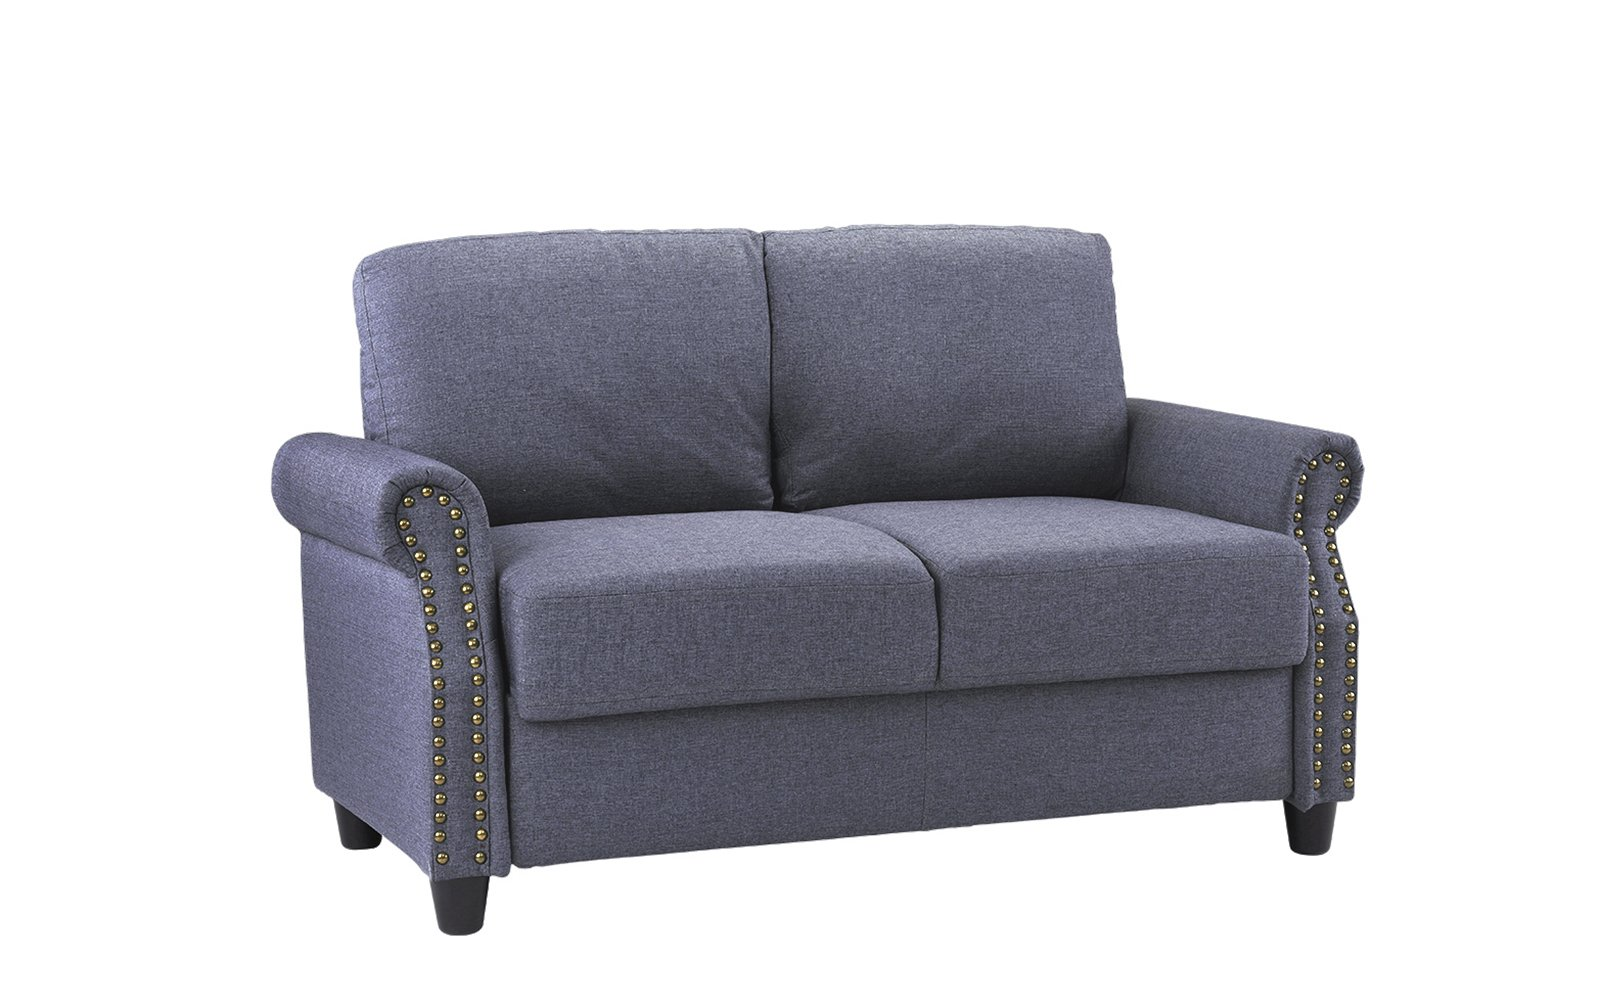 Classic Living Room Linen Loveseat with Nailhead Trim and Storage Space (Blue) by Sofamania (Image #3)